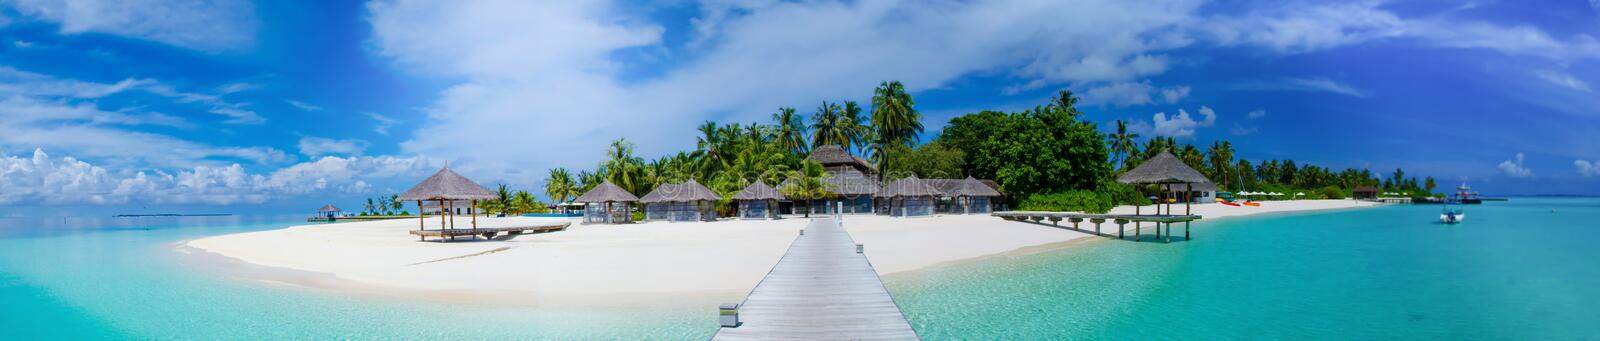 Tropical island panorama view at Maldives royalty free stock photos